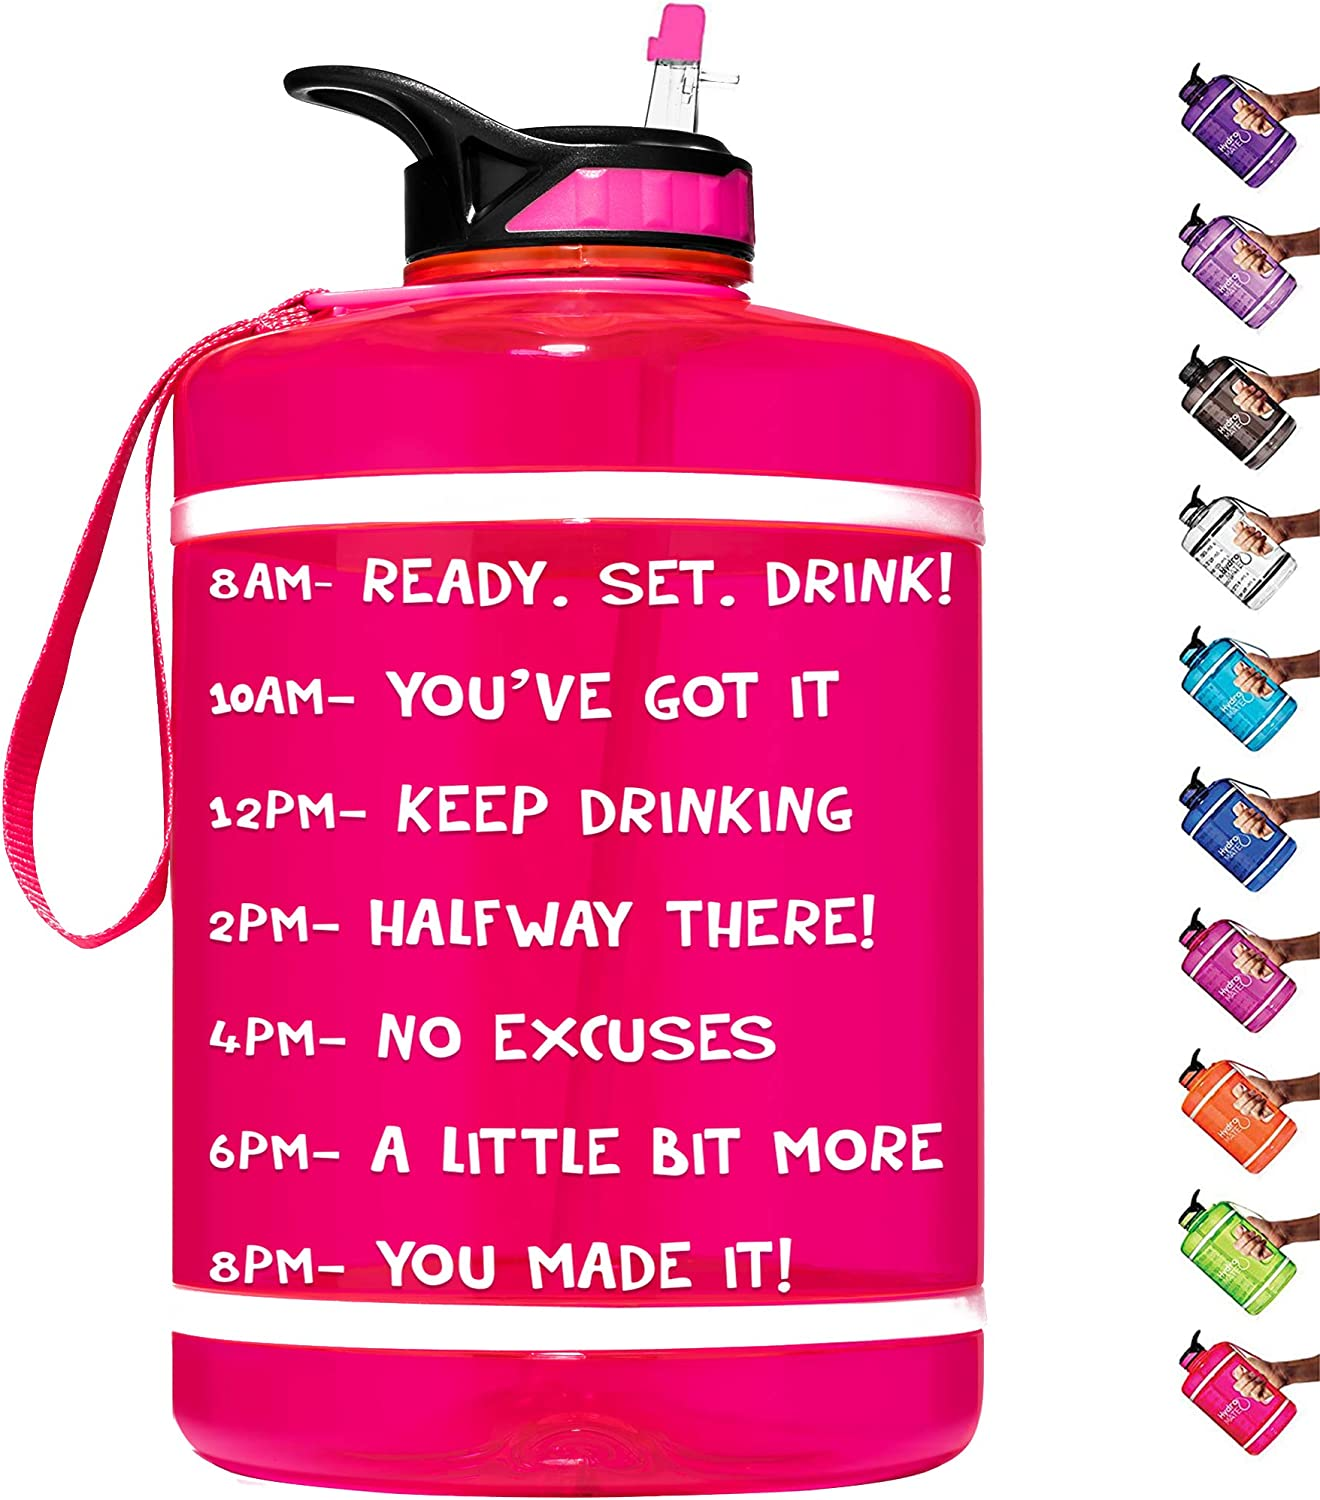 HydroMATE 1 Gallon Motivational Water Bottle with Time Marker Large BPA Free Jug with Straw & Handle Reusable Leak Proof Bottle Time Marked Drink More Water Daily Hydro MATE One Gallon 128 oz